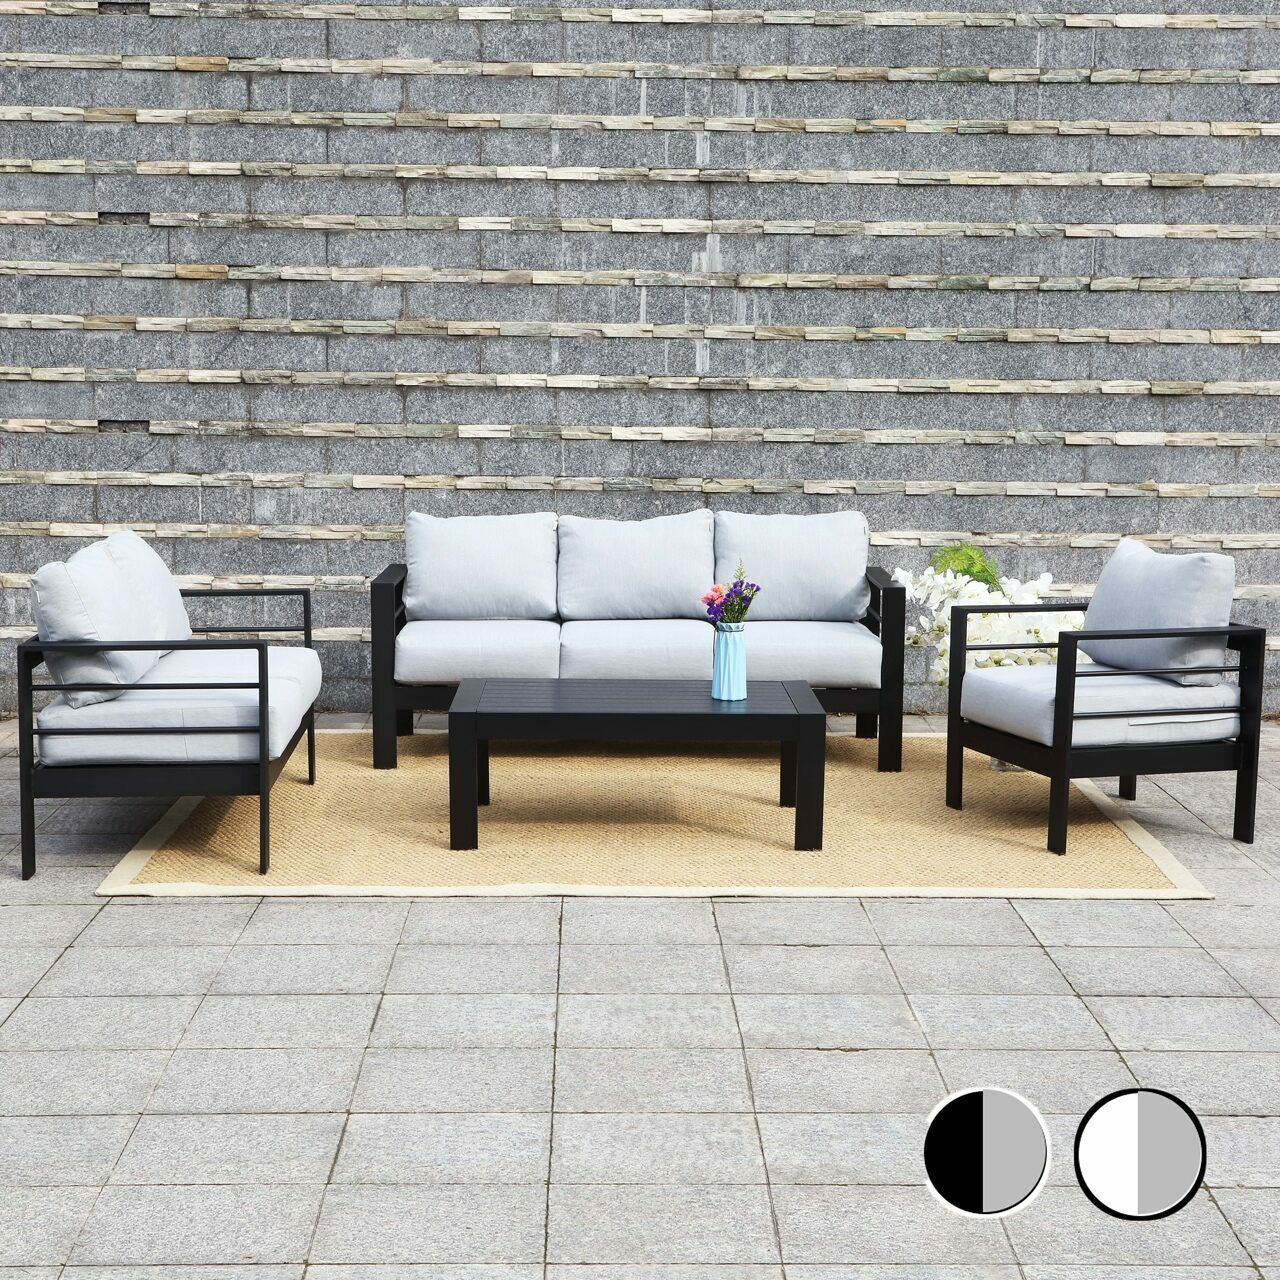 Harrier Outdoor Garden Sofa & Table Furniture Set